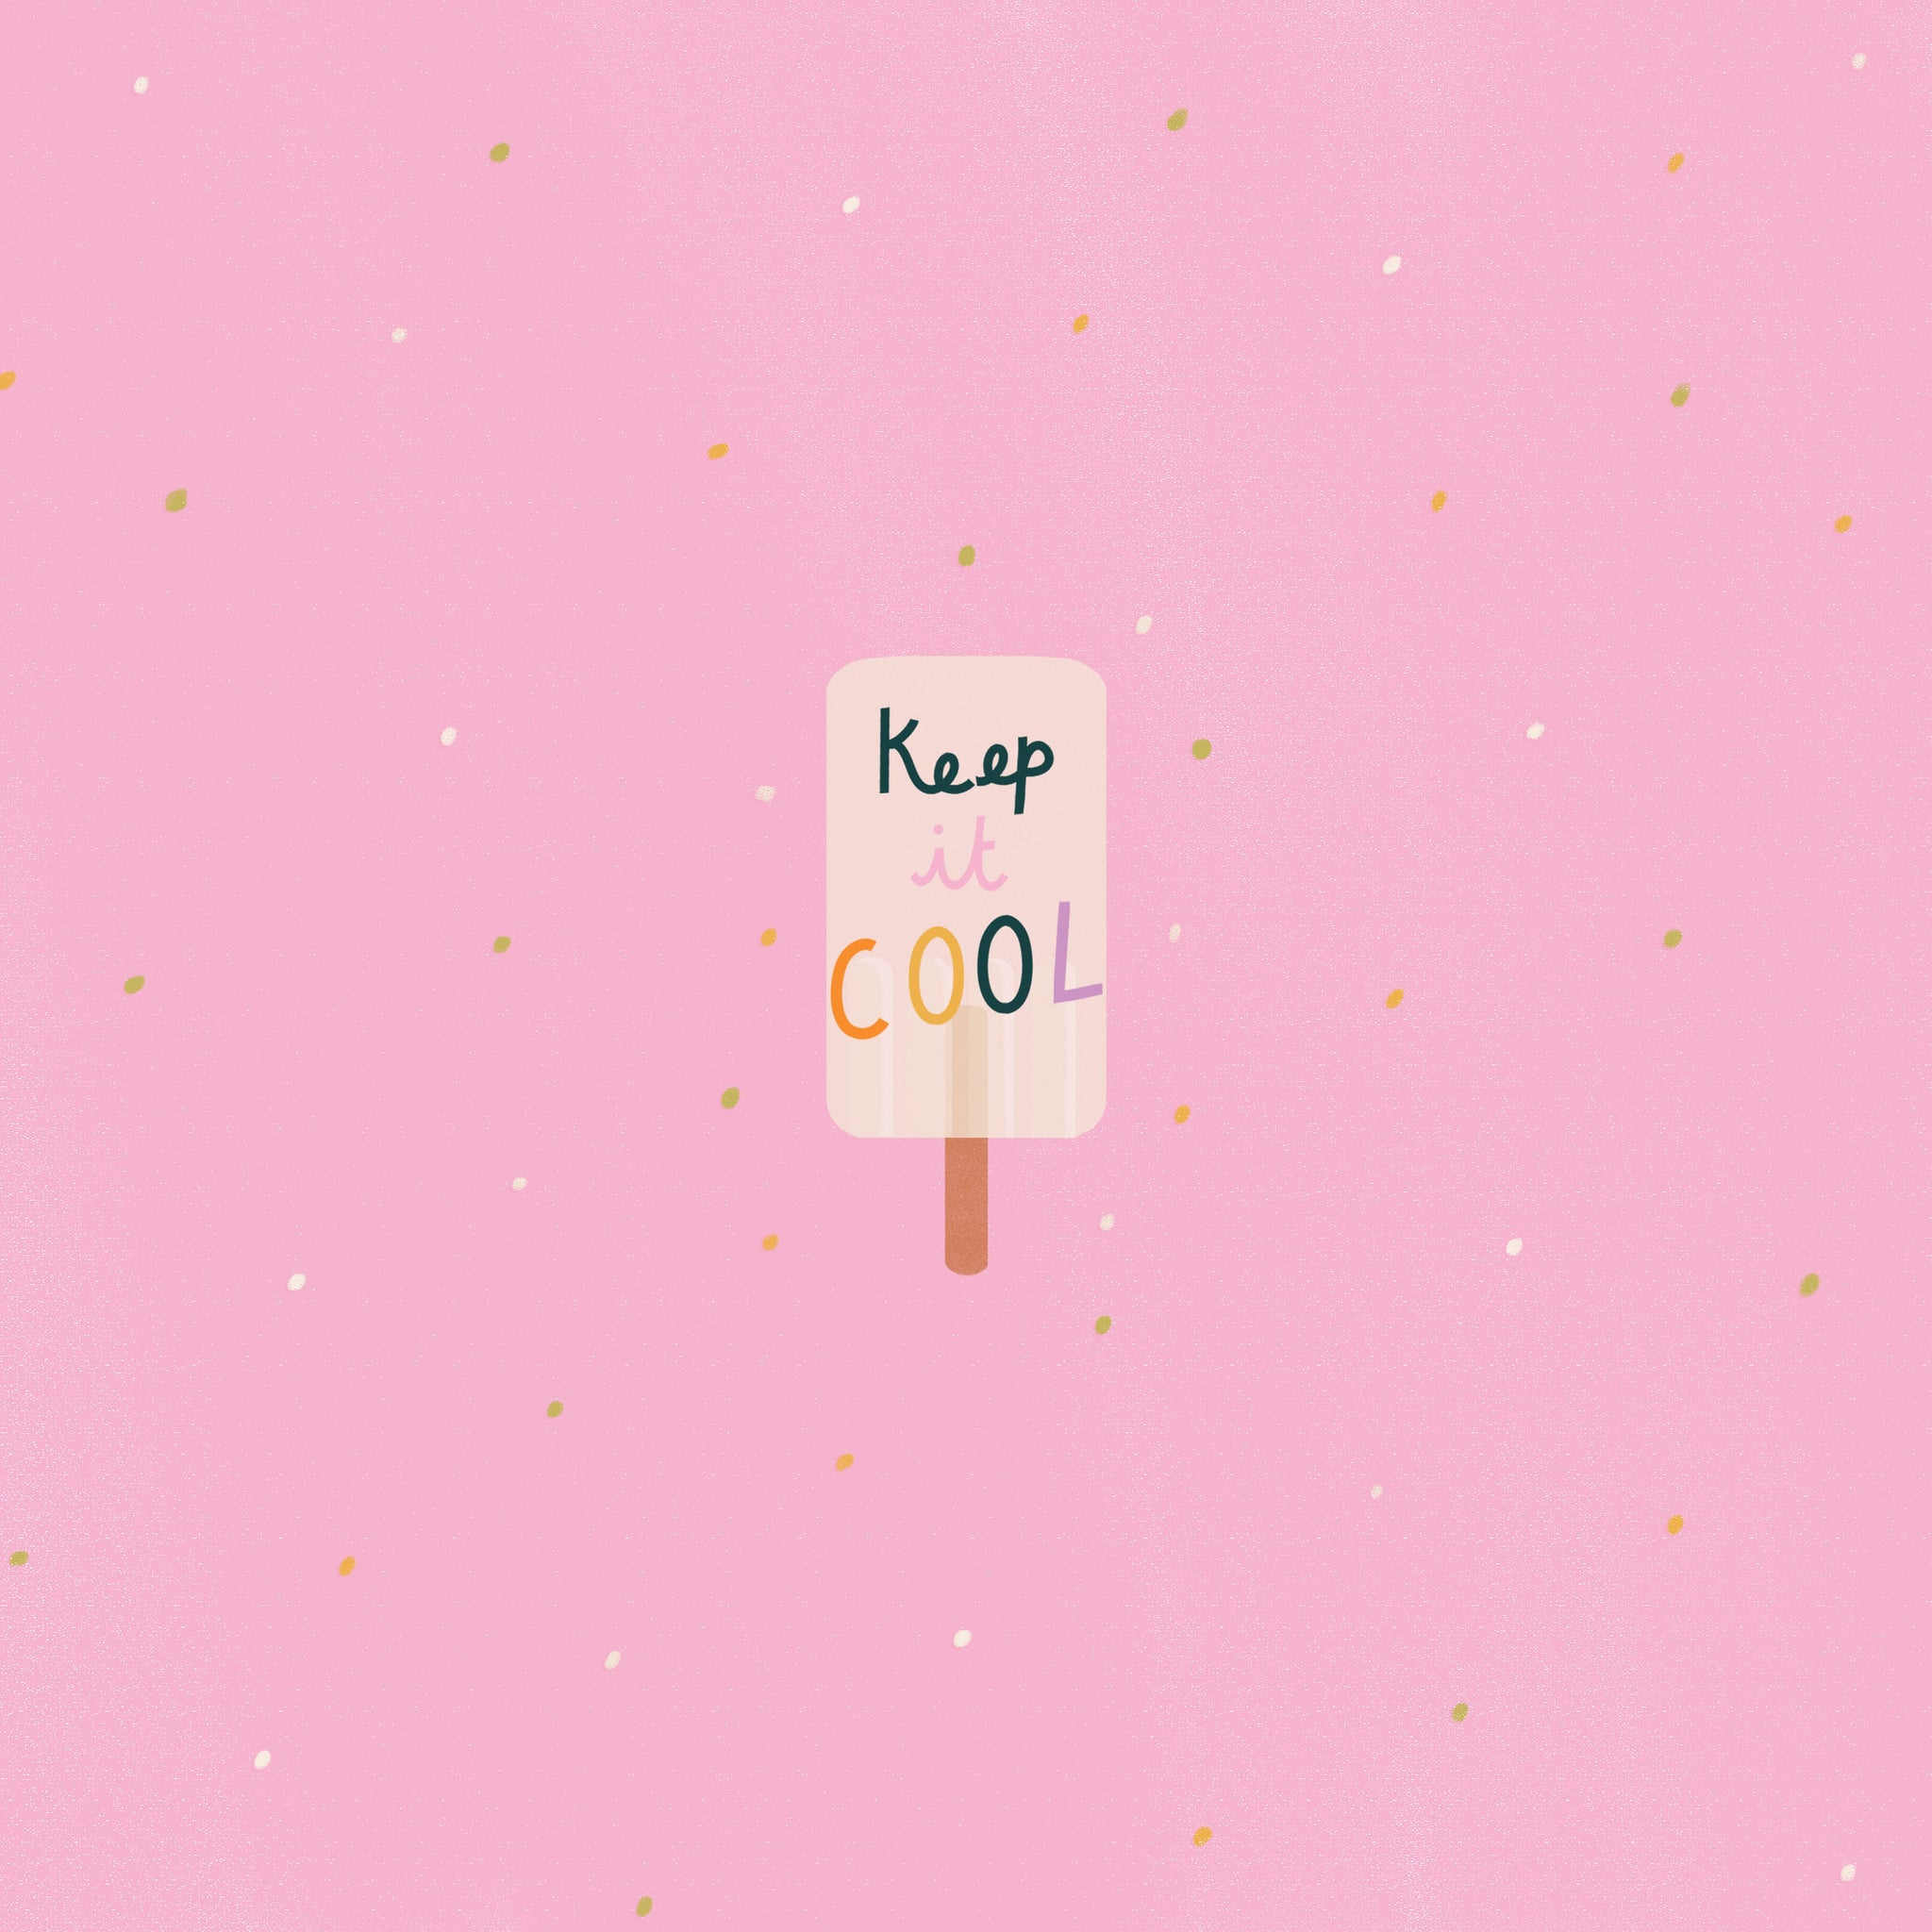 'Keep it cool' design with illustrated ice lolly, wallpaper for tablet | Raspberry Blossom